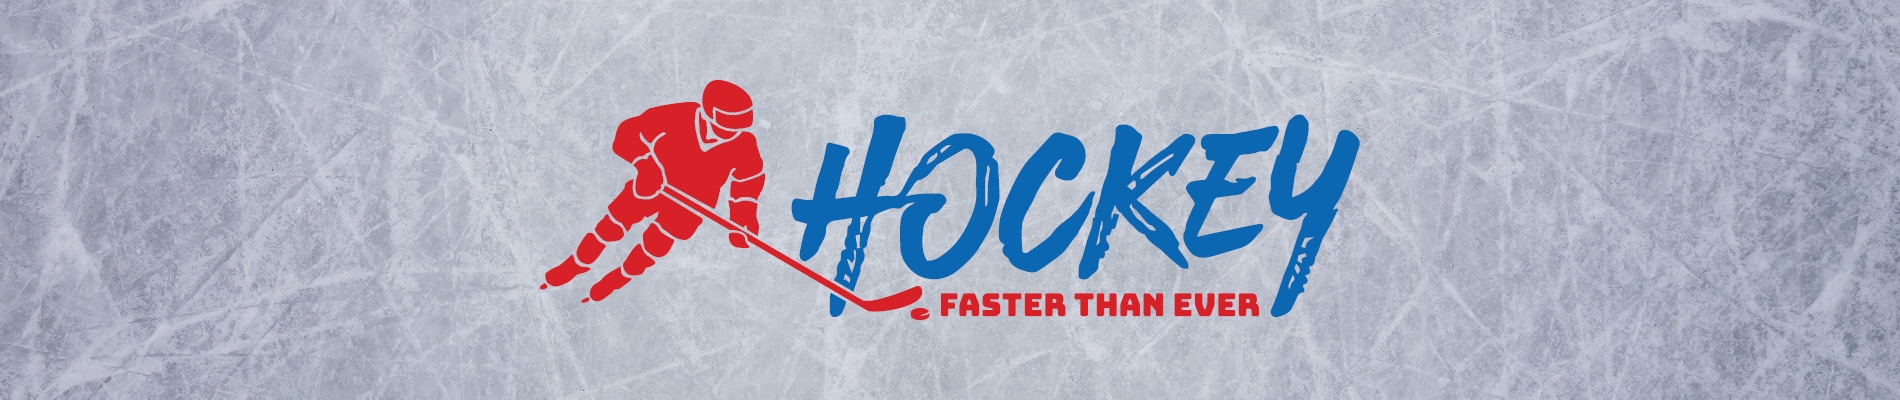 HOCKEY: Faster Than Ever